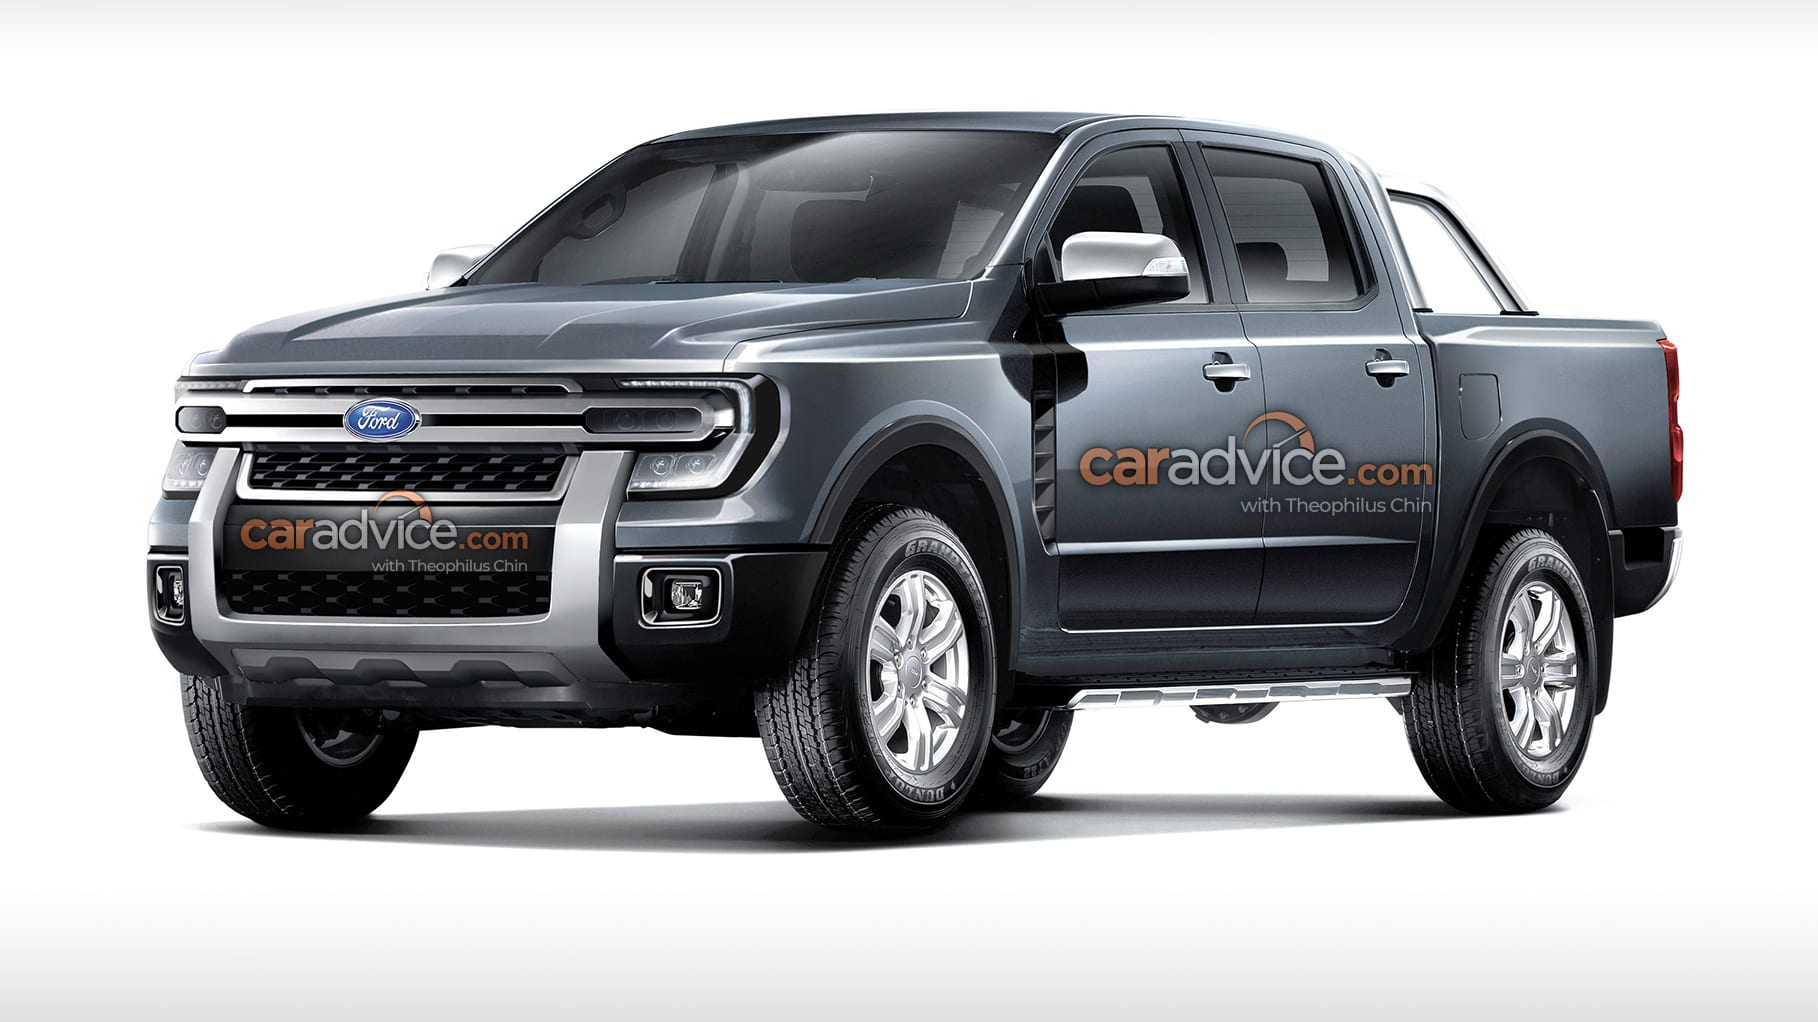 2022 Ford Ranger: 3.0 Tdv6, 2.0 Bi-Turbo, Advanced Tech